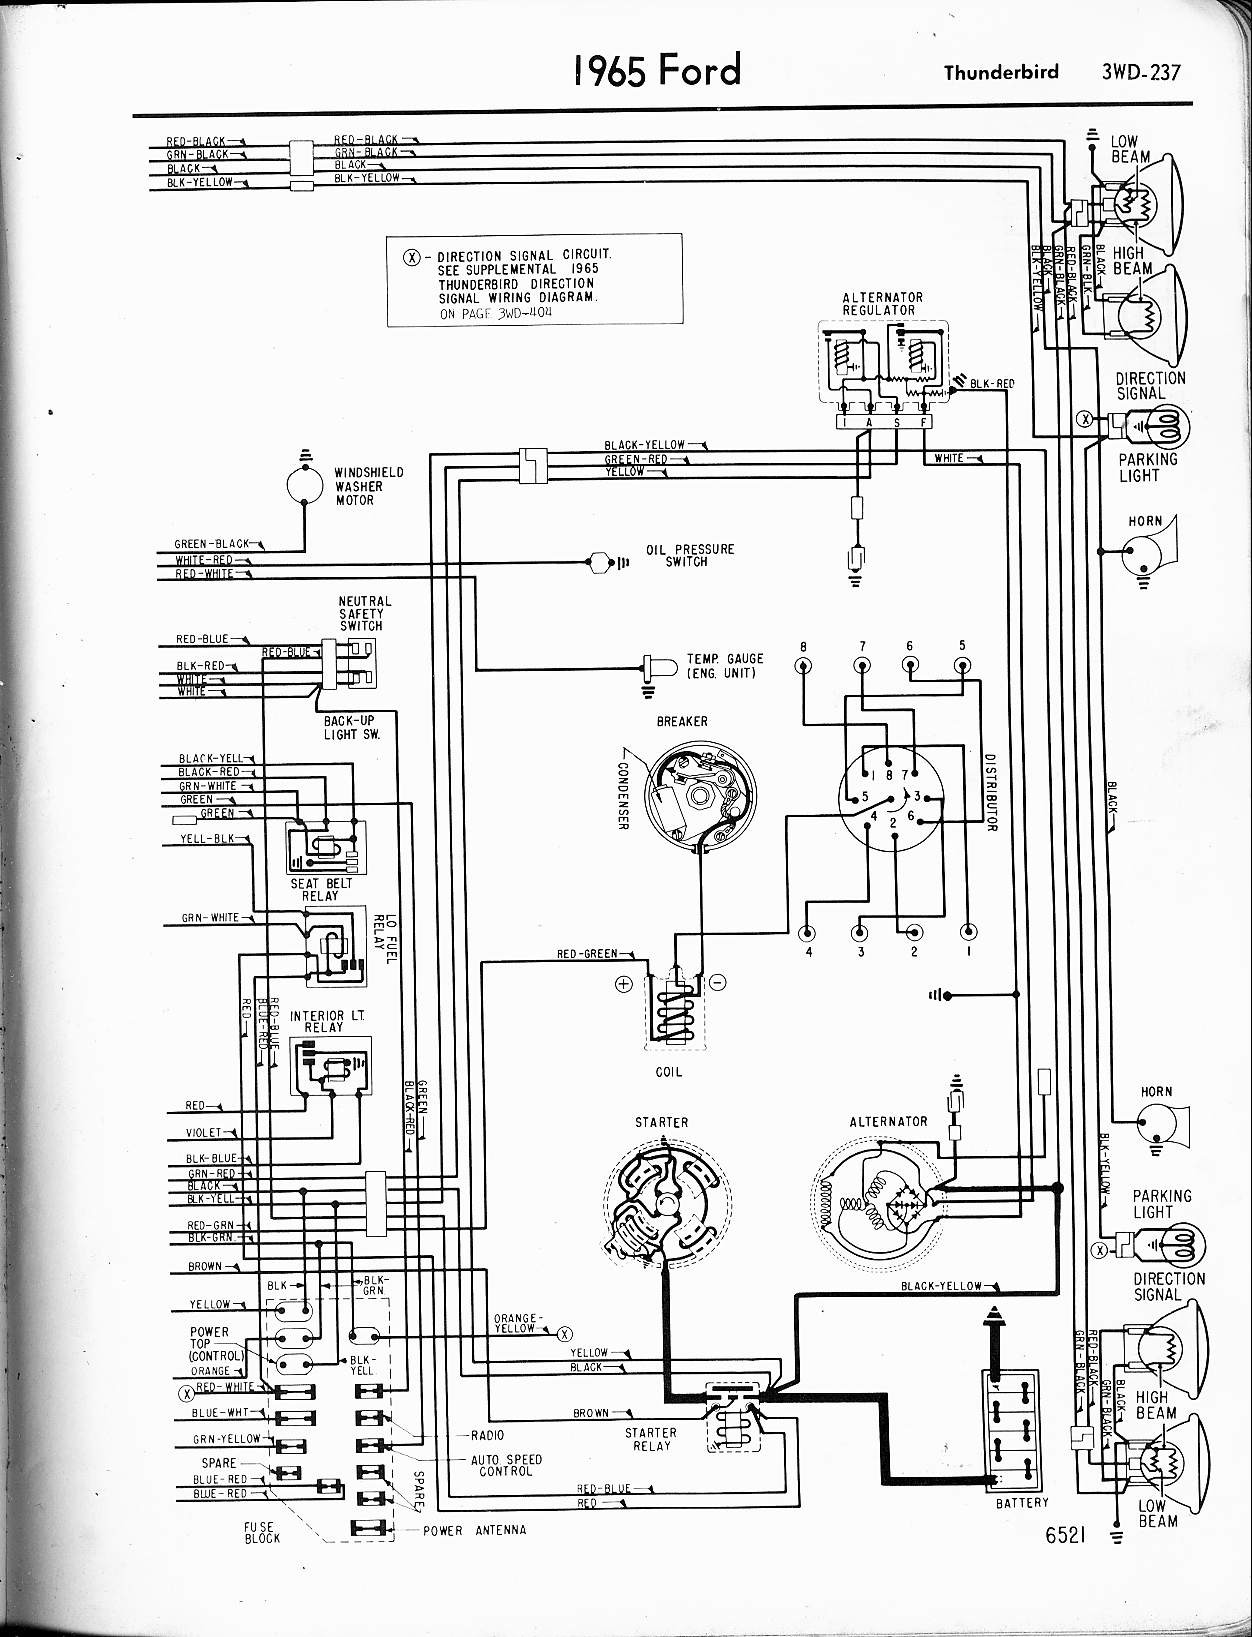 F250 Tail Light Wiring 57 65 ford Wiring Diagrams Of F250 Tail Light Wiring 1973 1979 ford Truck Wiring Diagrams & Schematics